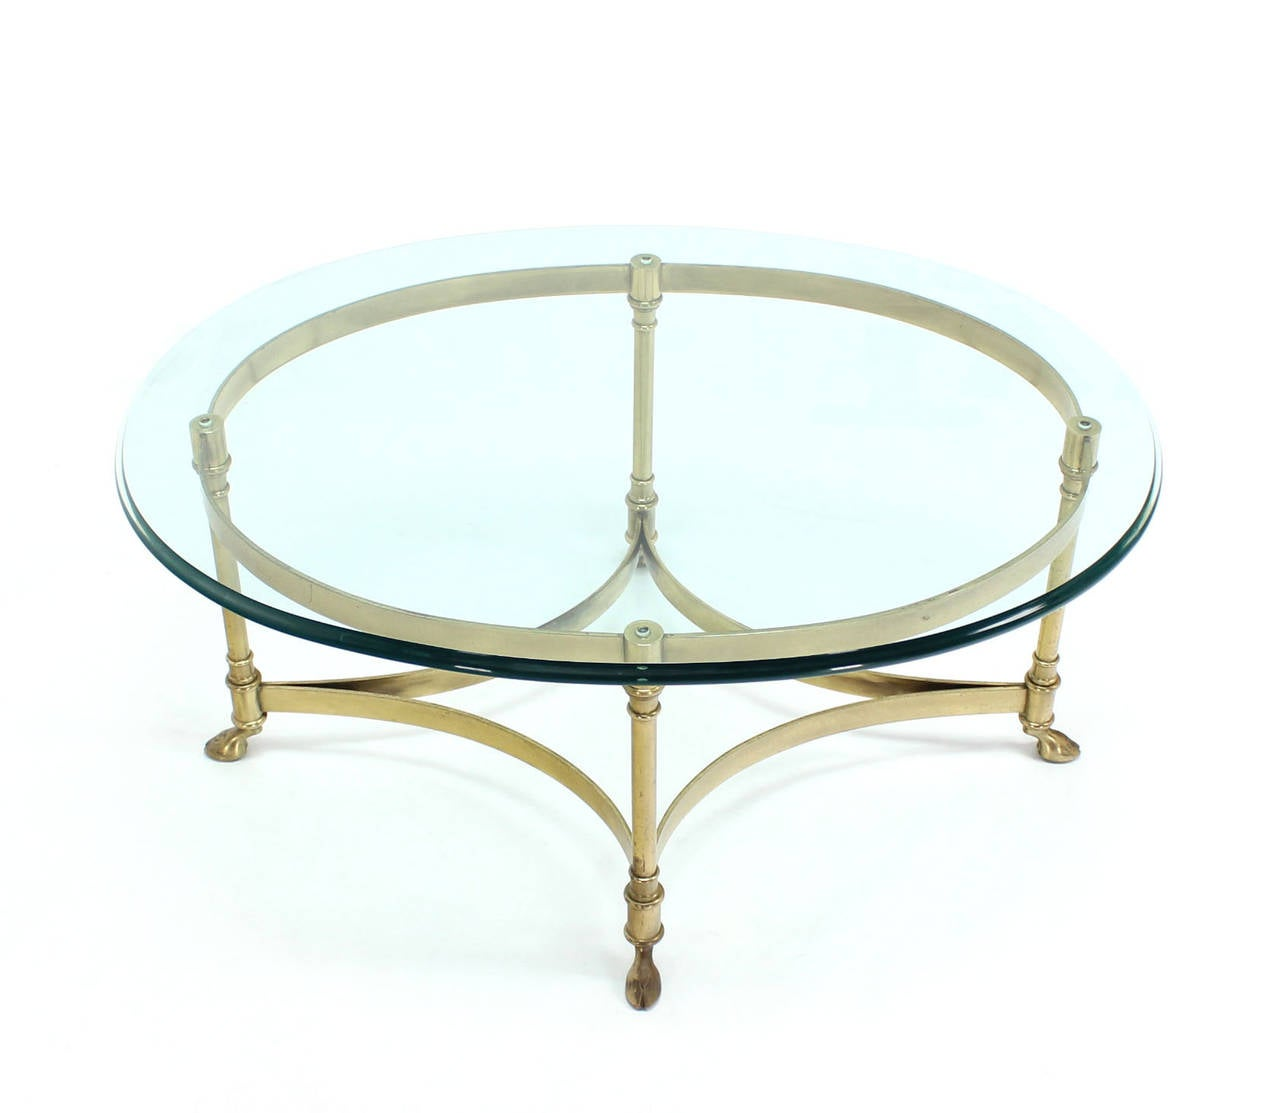 Brass and glass oval hoof feet coffee table at 1stdibs for Oval glass coffee table